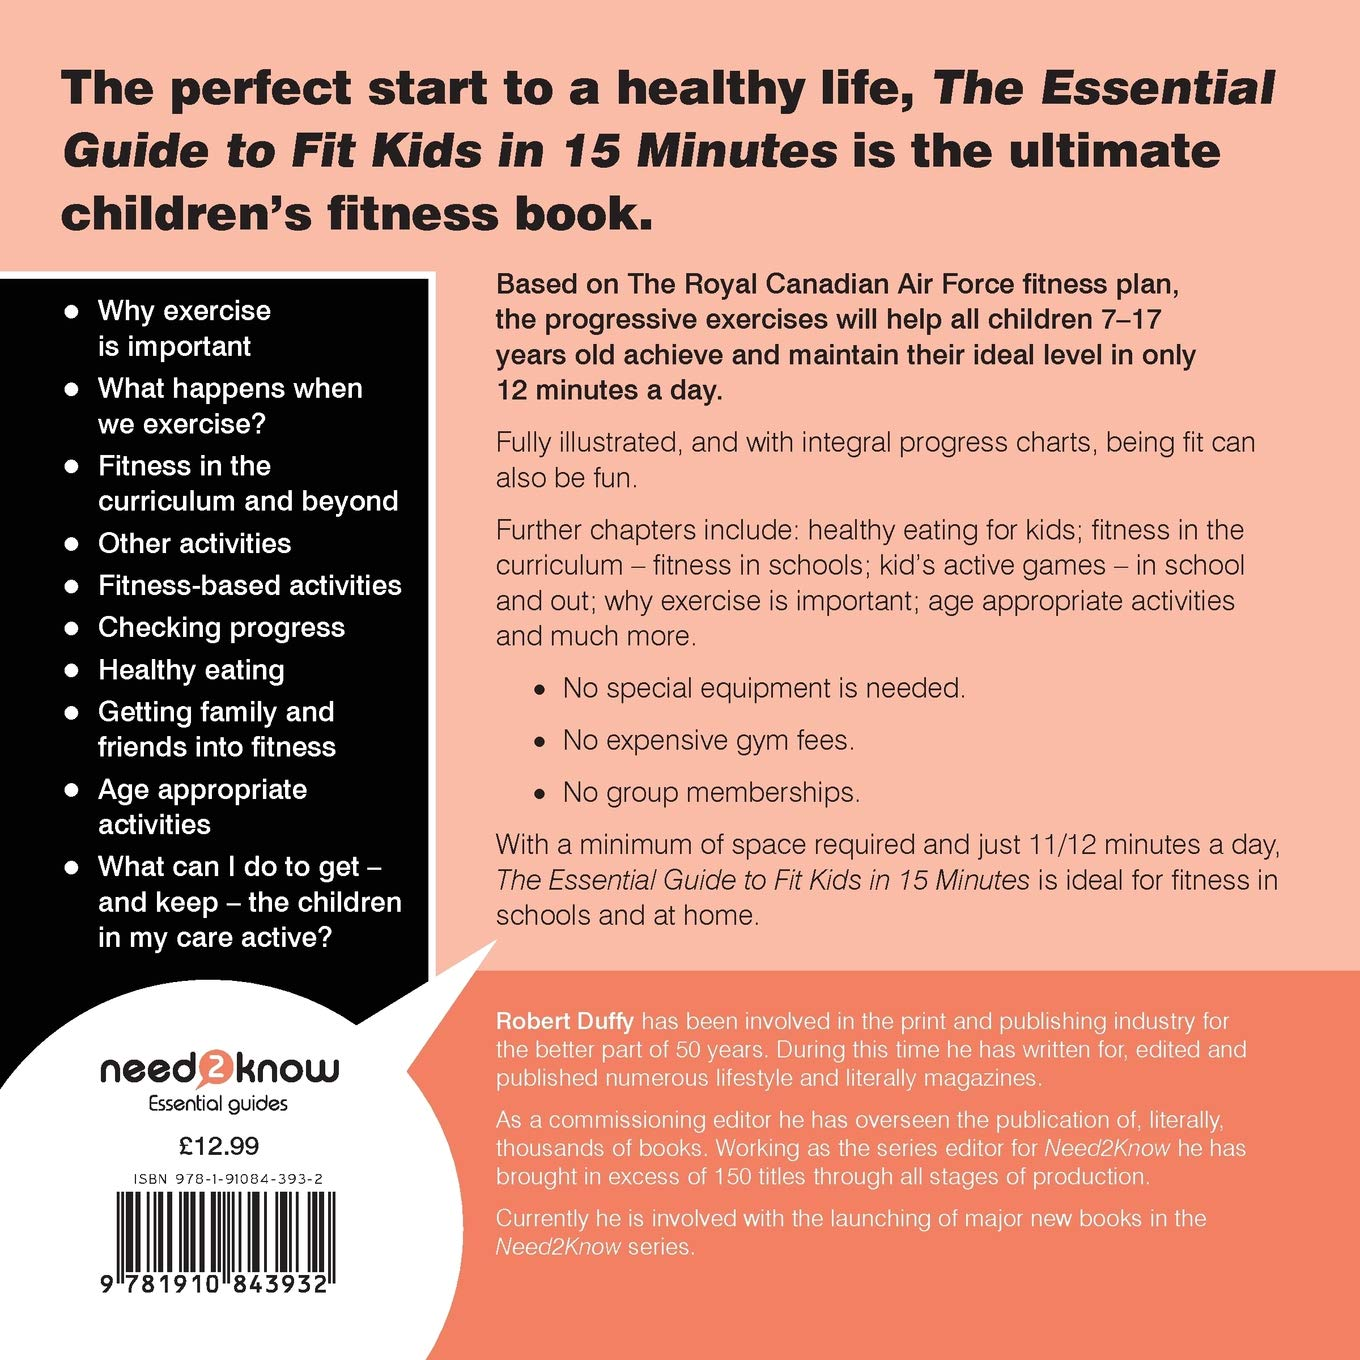 6f15f3754de Fit Kids in 15 minutes  The Essential Guide (Essential Guides)   Amazon.co.uk  Robert Duffy  9781910843932  Books